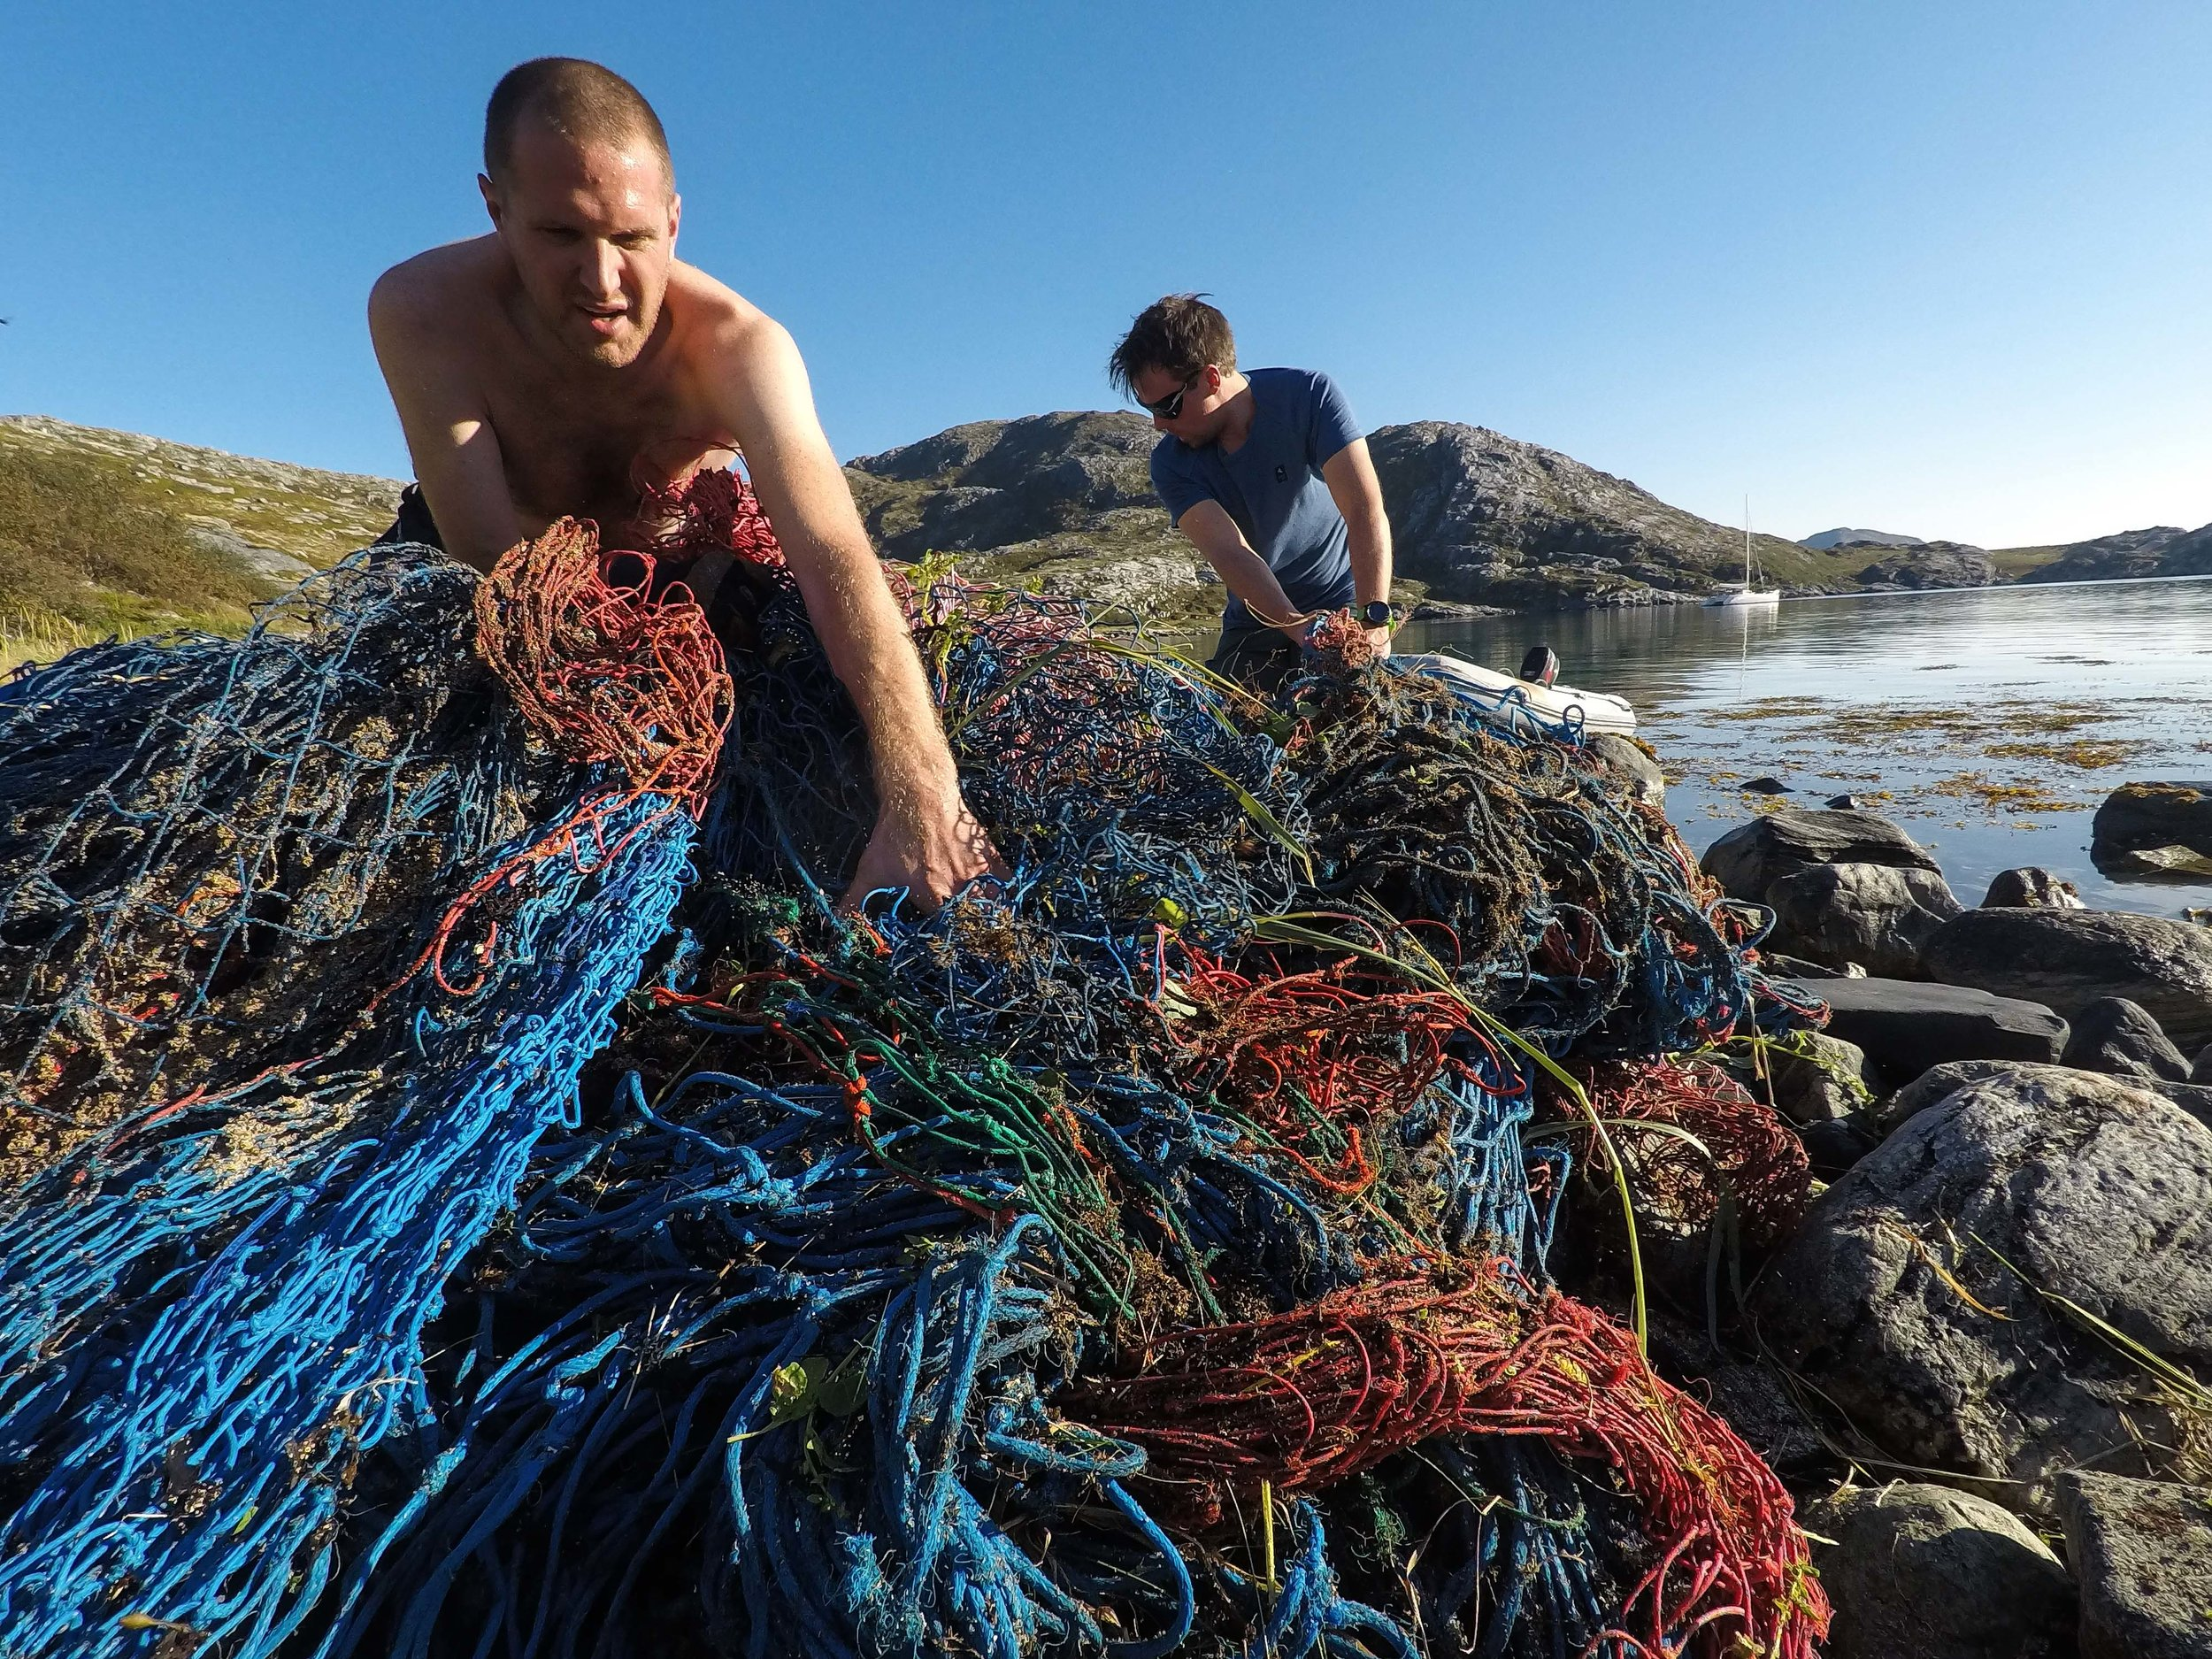 Volunteers Brieuc and Andreas working hard to remove a 200 kg plastic fishing net from the marine environment around the island Andammen, at 70°N. Photographer: Jonas Legernes